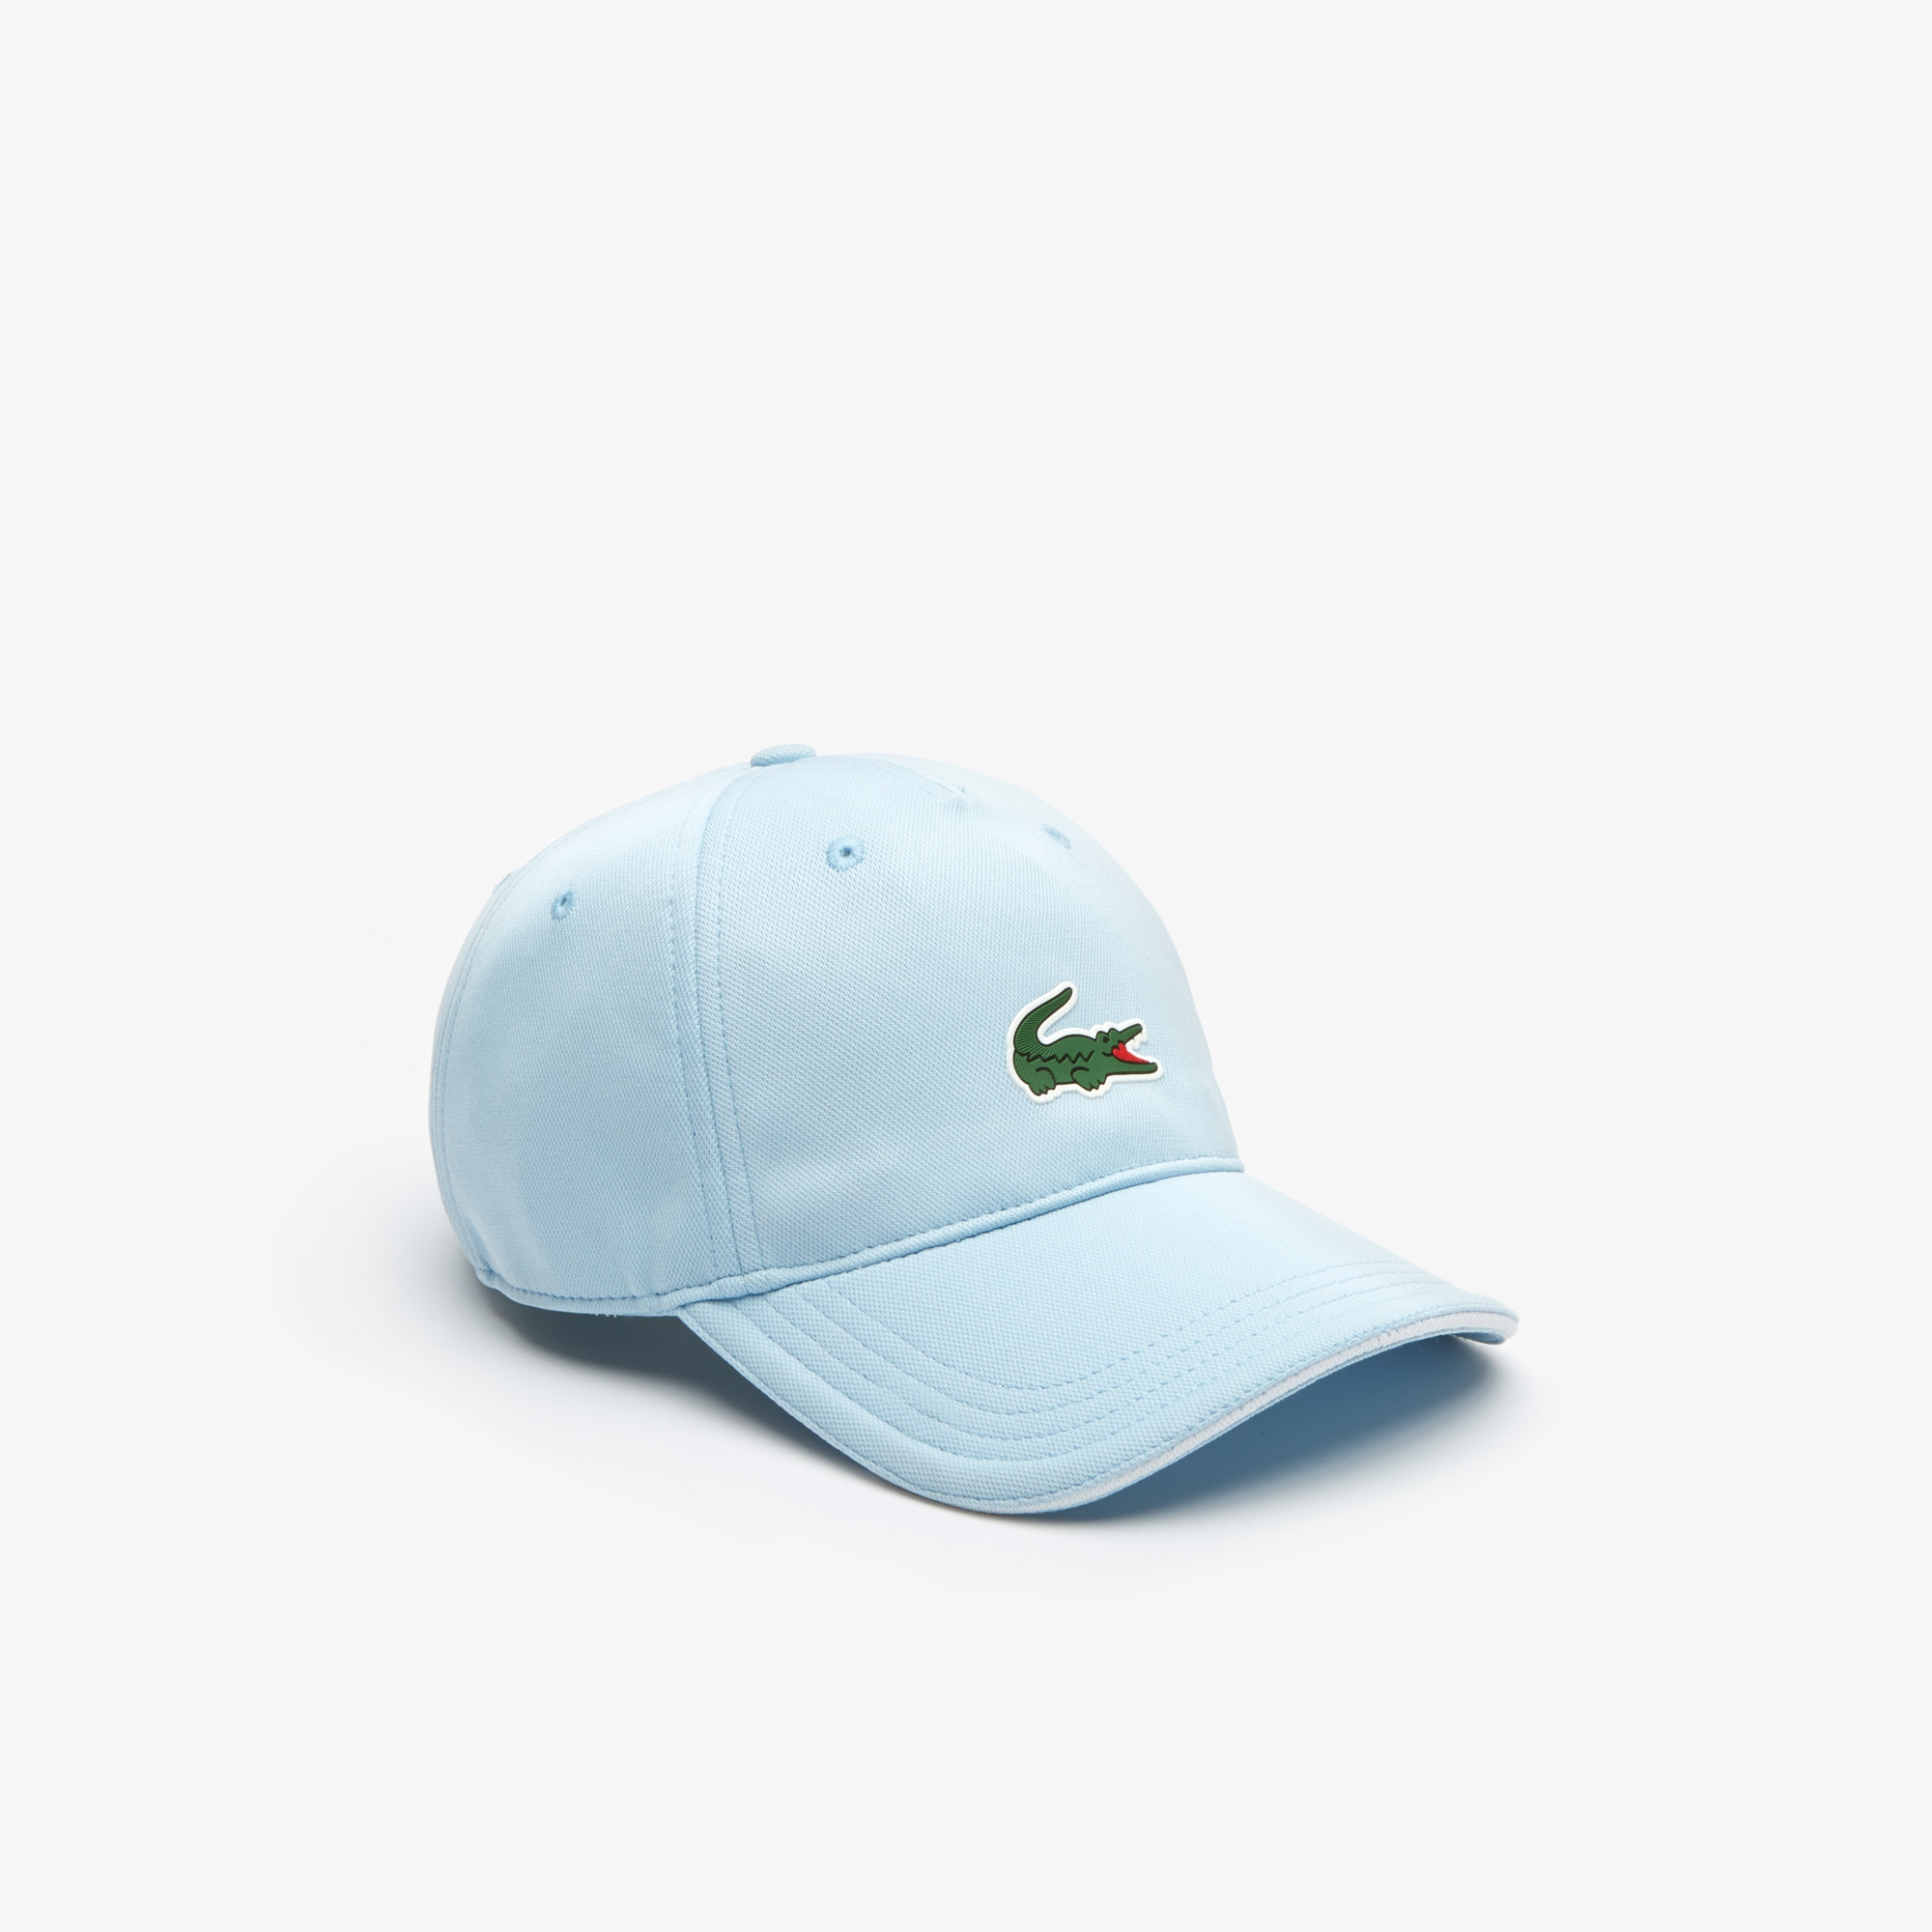 Men's SPORT Technical Piqué Golf Cap